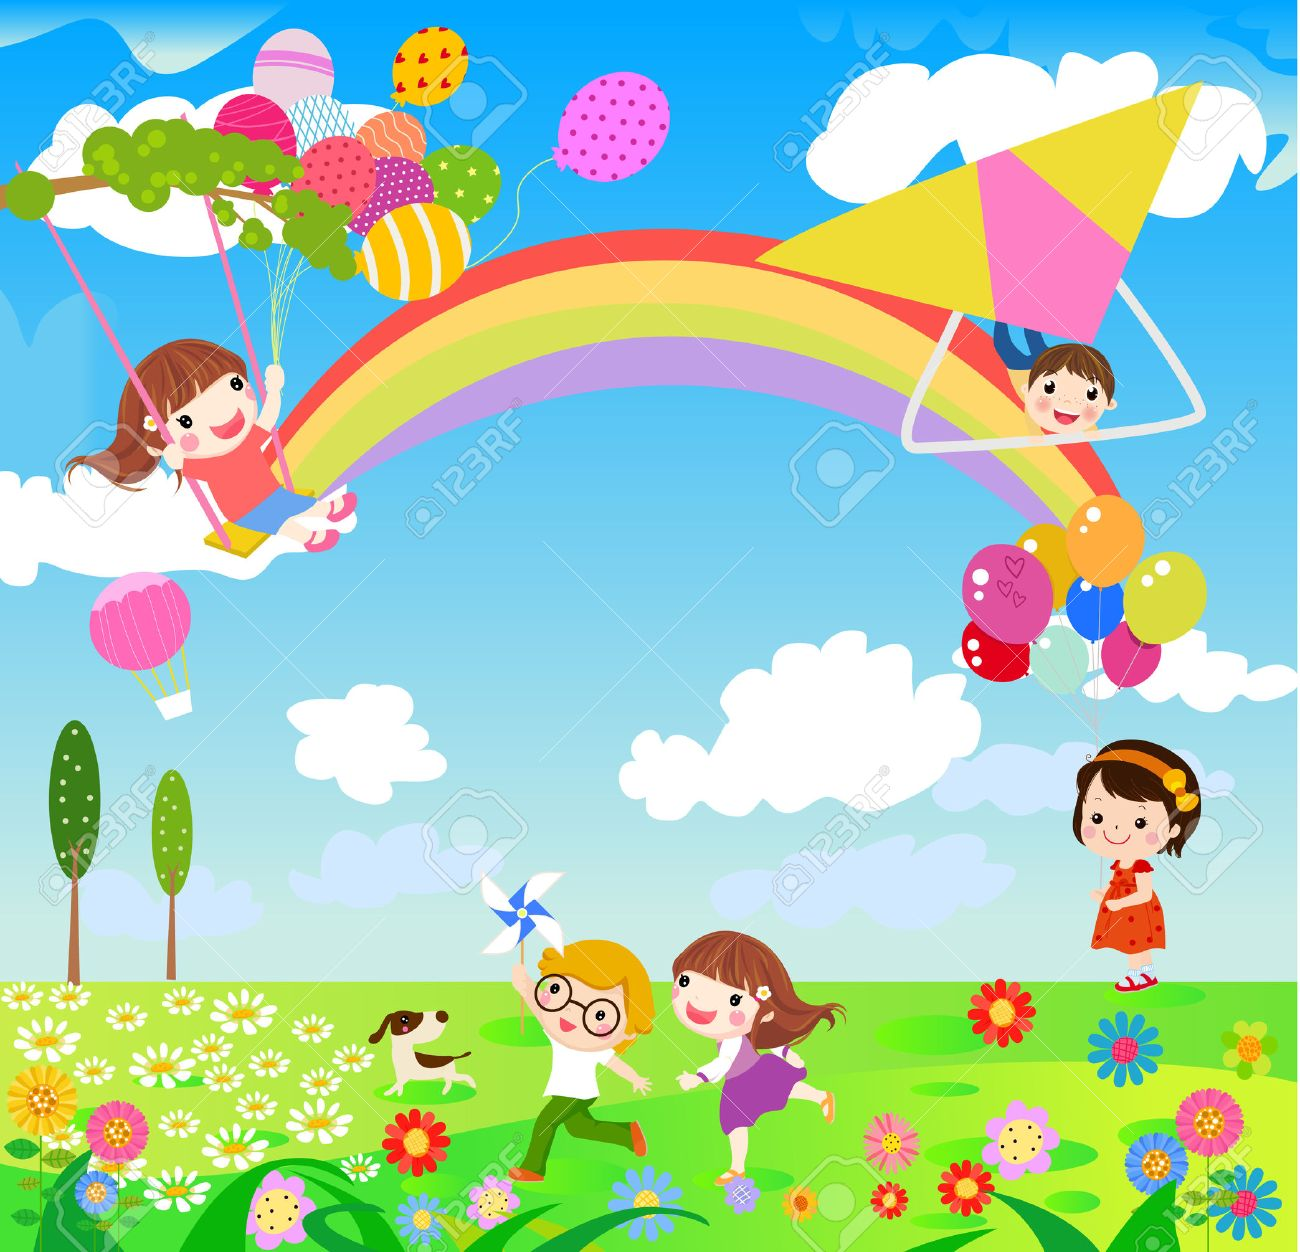 Activities Clipart Spring Season Activities Spring Season